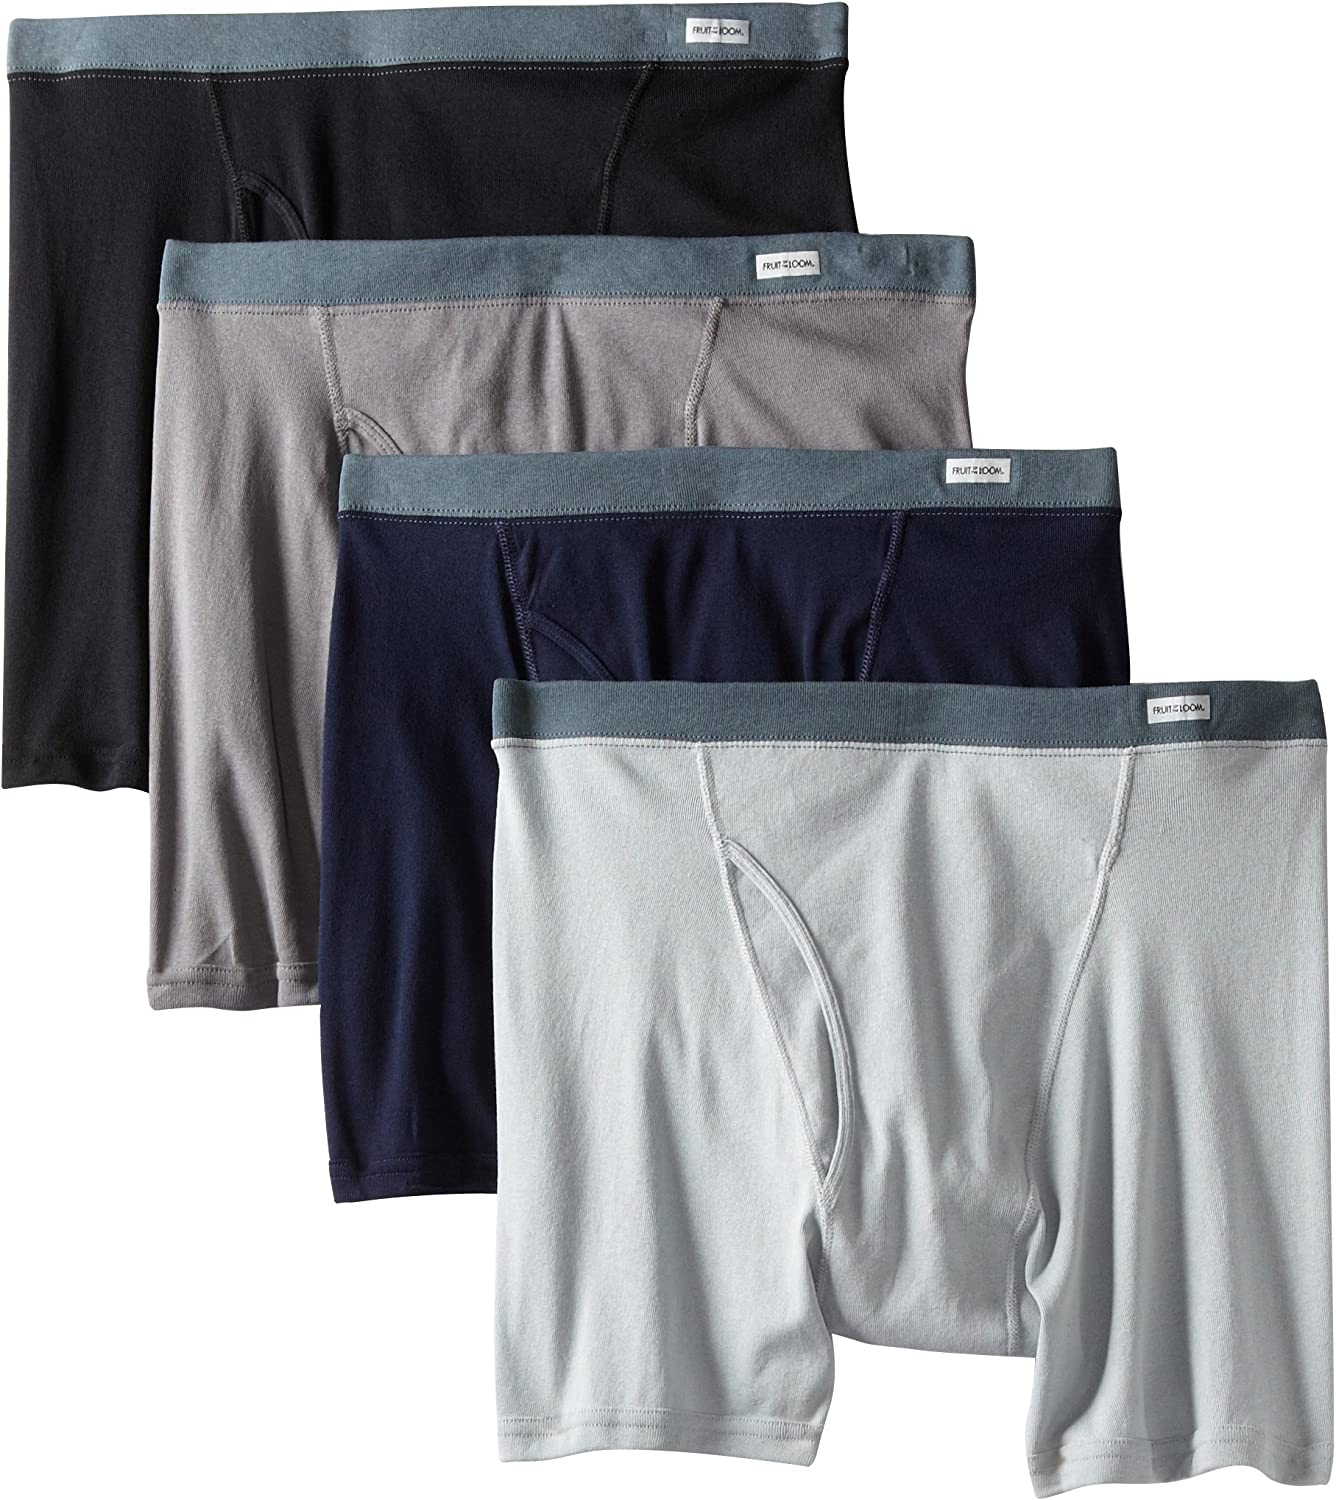 Fruit of the Loom Men's Big Covered Waistband Boxer Brief(Pack of 4)